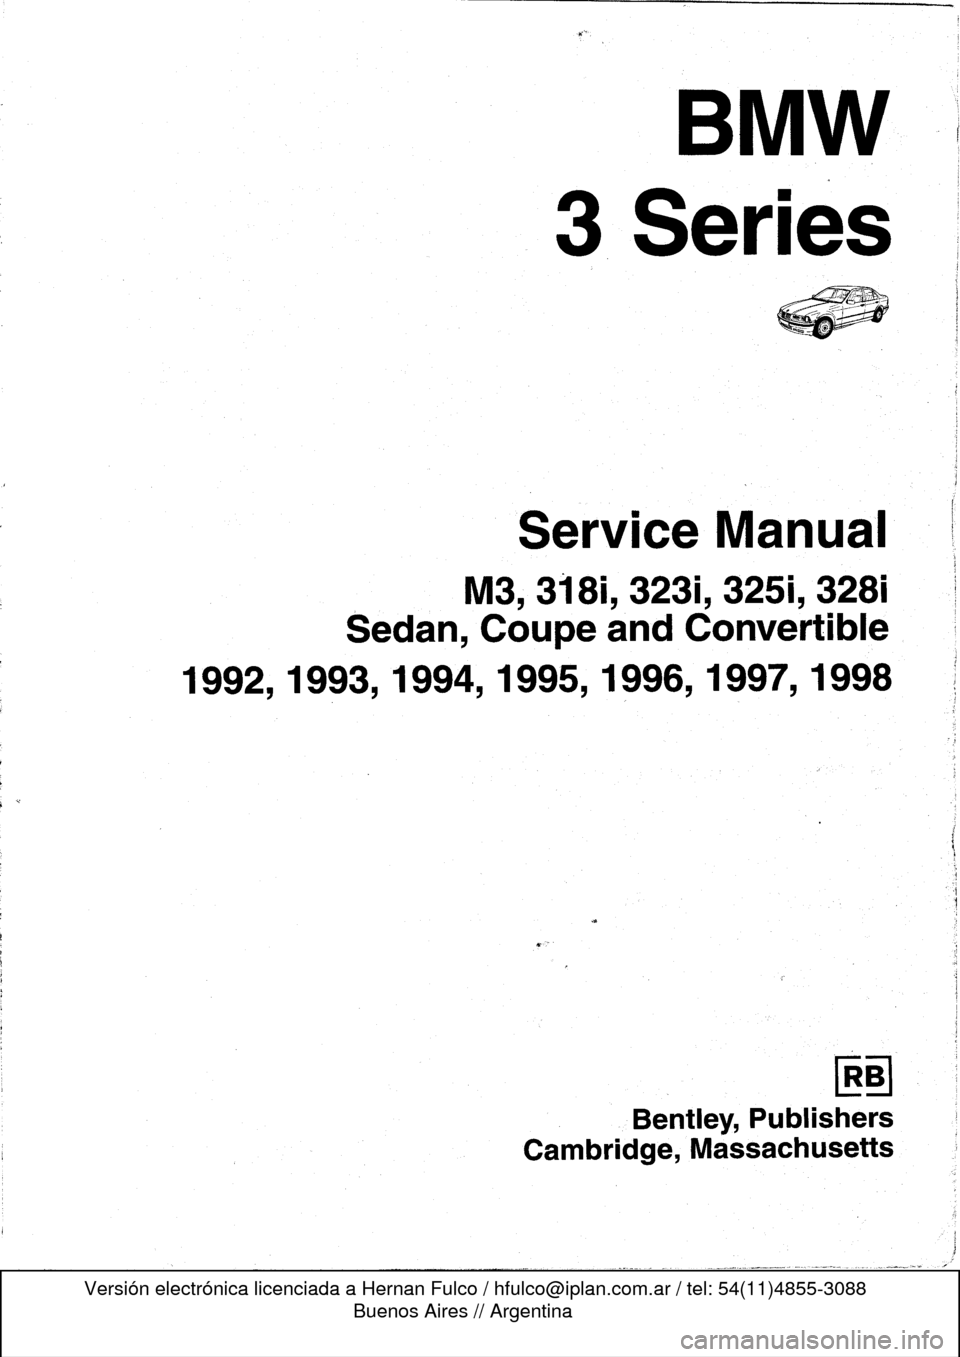 BMW M3 1996 E36 Workshop Manual  B mw  3 Series  M3, 3181,3231,3251, 3281  Sedan, Coupe and Convertible  1992,1993,1994,1995, 1996,1997, 1998  Bentley, Publishers  Cambridge, Massachusetts